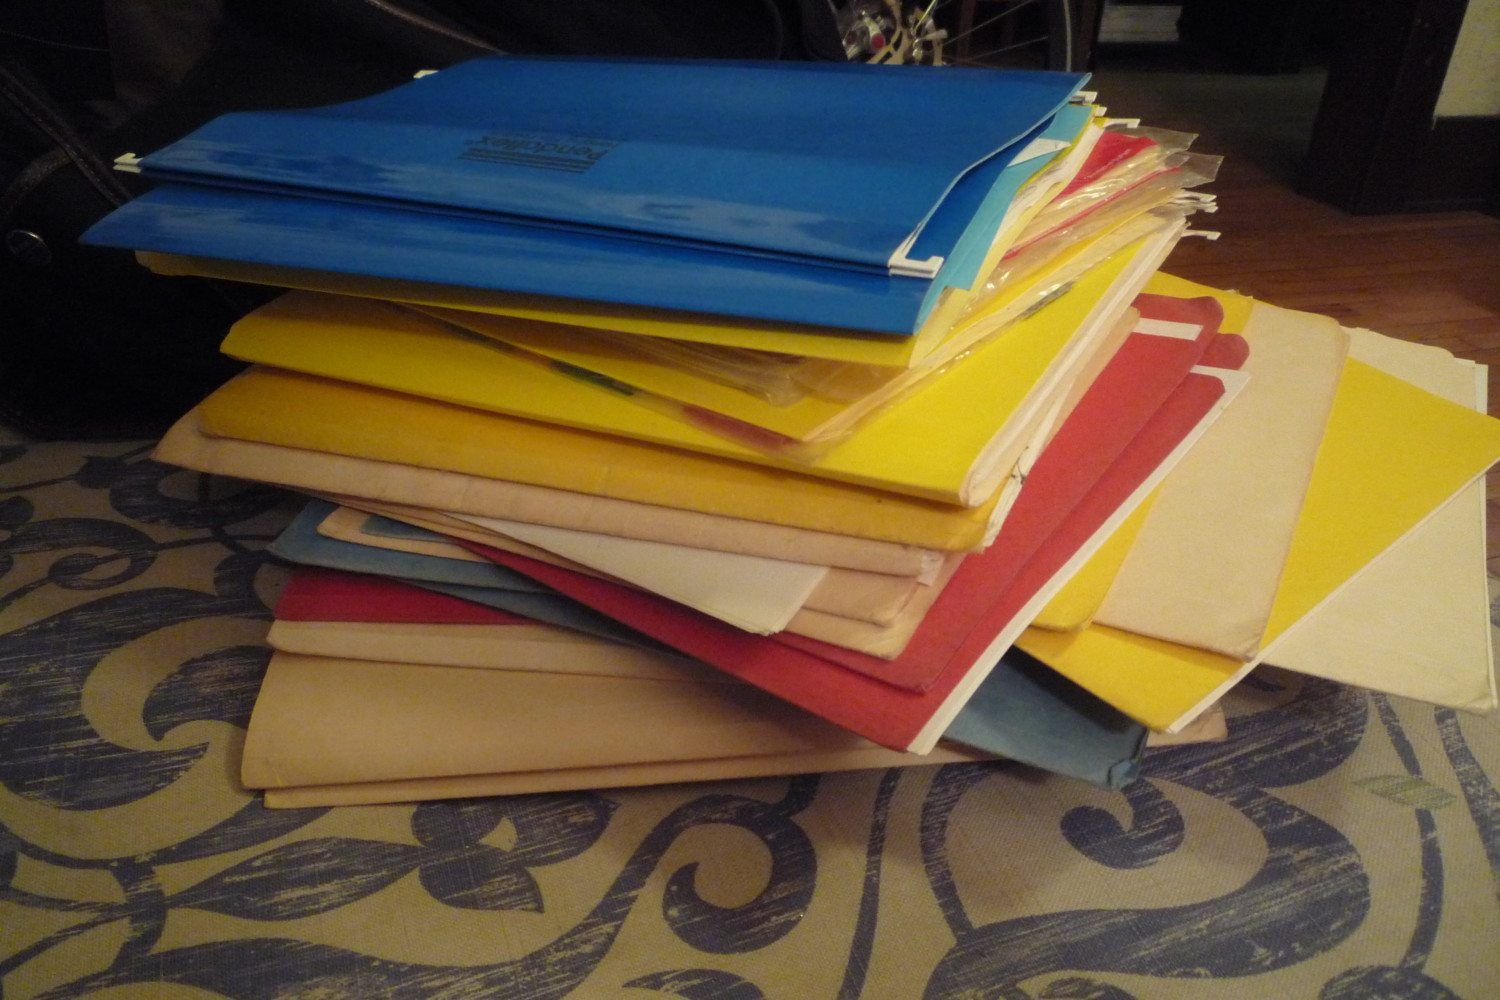 7 simple steps to get rid of paper clutter for good